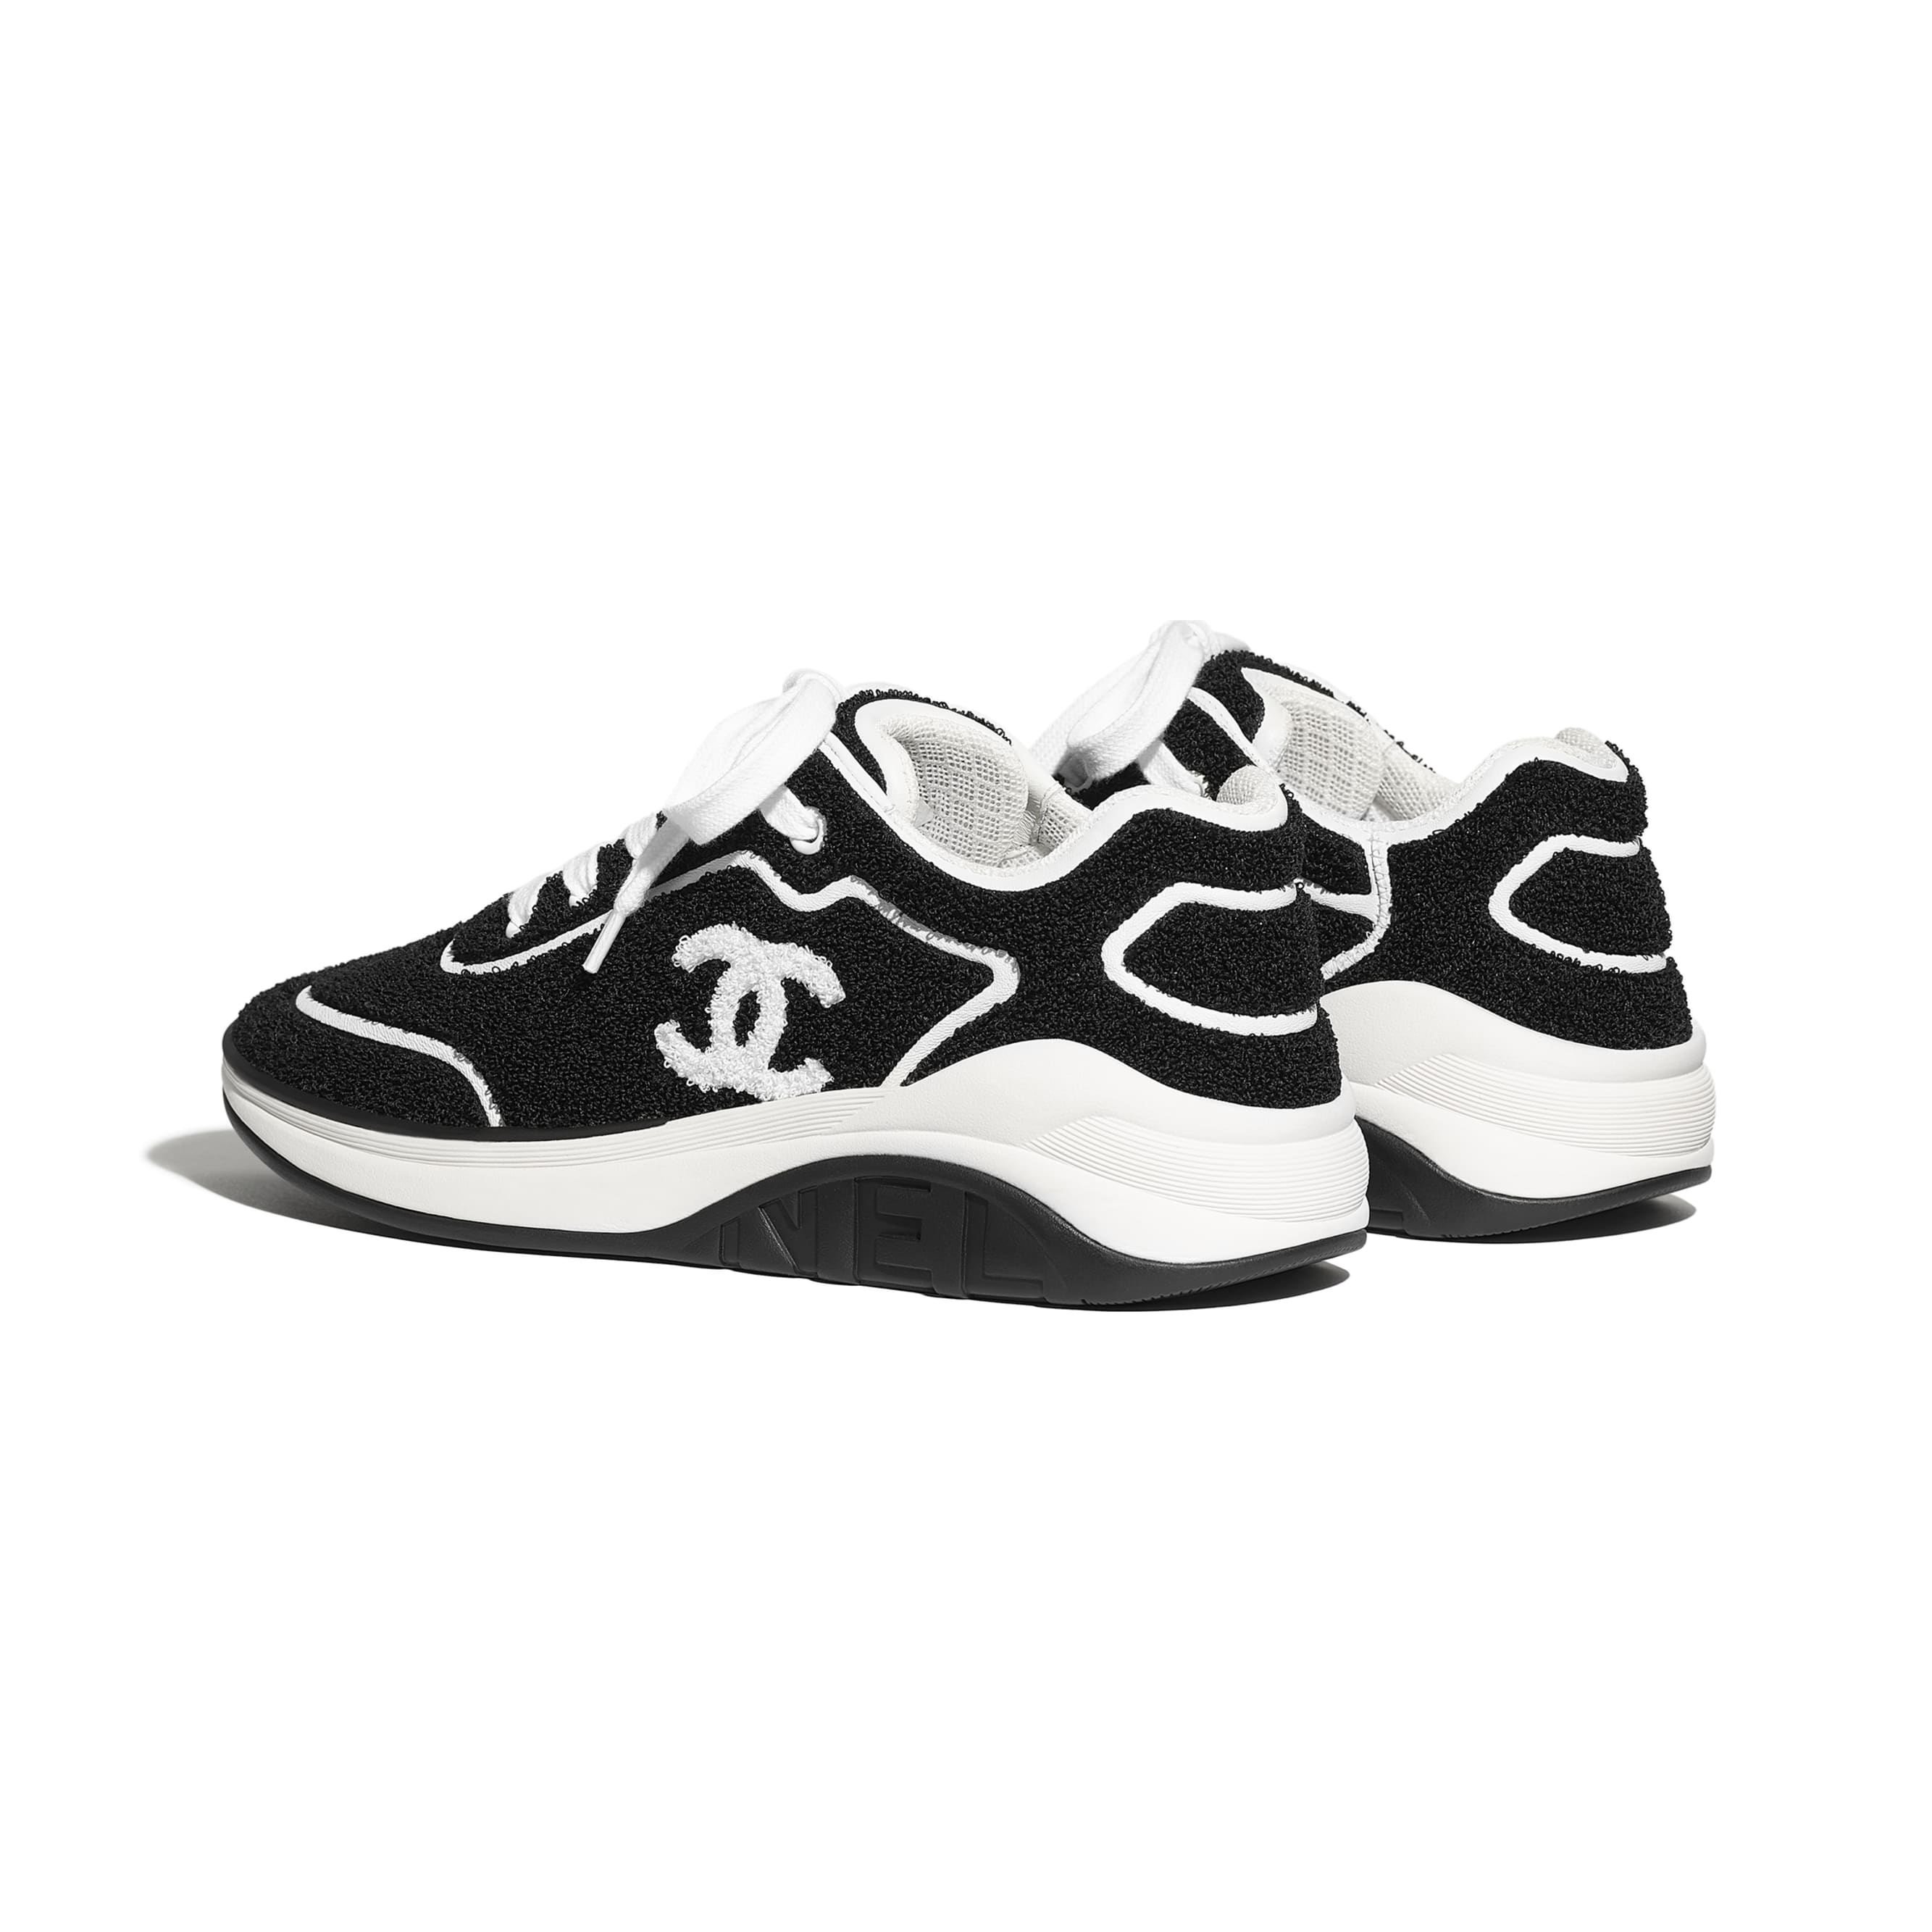 Sneakers - Black - Embroidered Fabric & Lambskin - CHANEL - Other view - see standard sized version